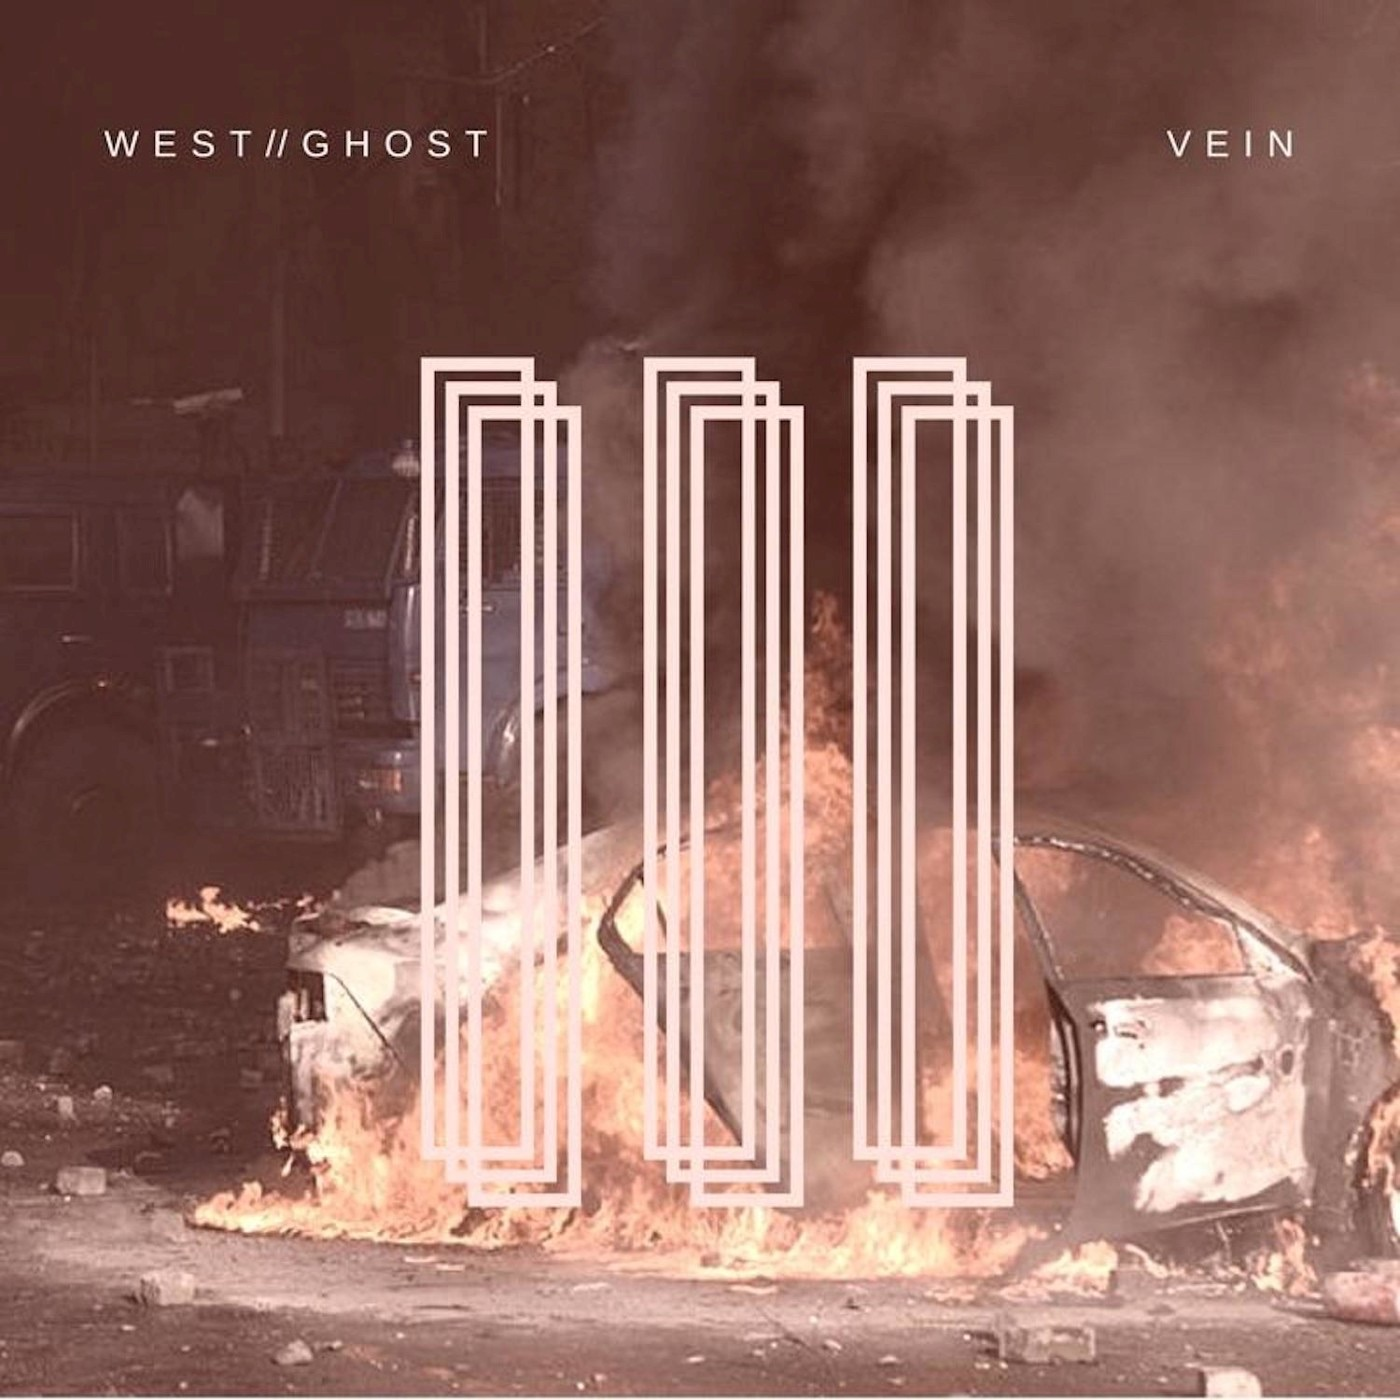 WestGhost - VEIN [Single] (2018)